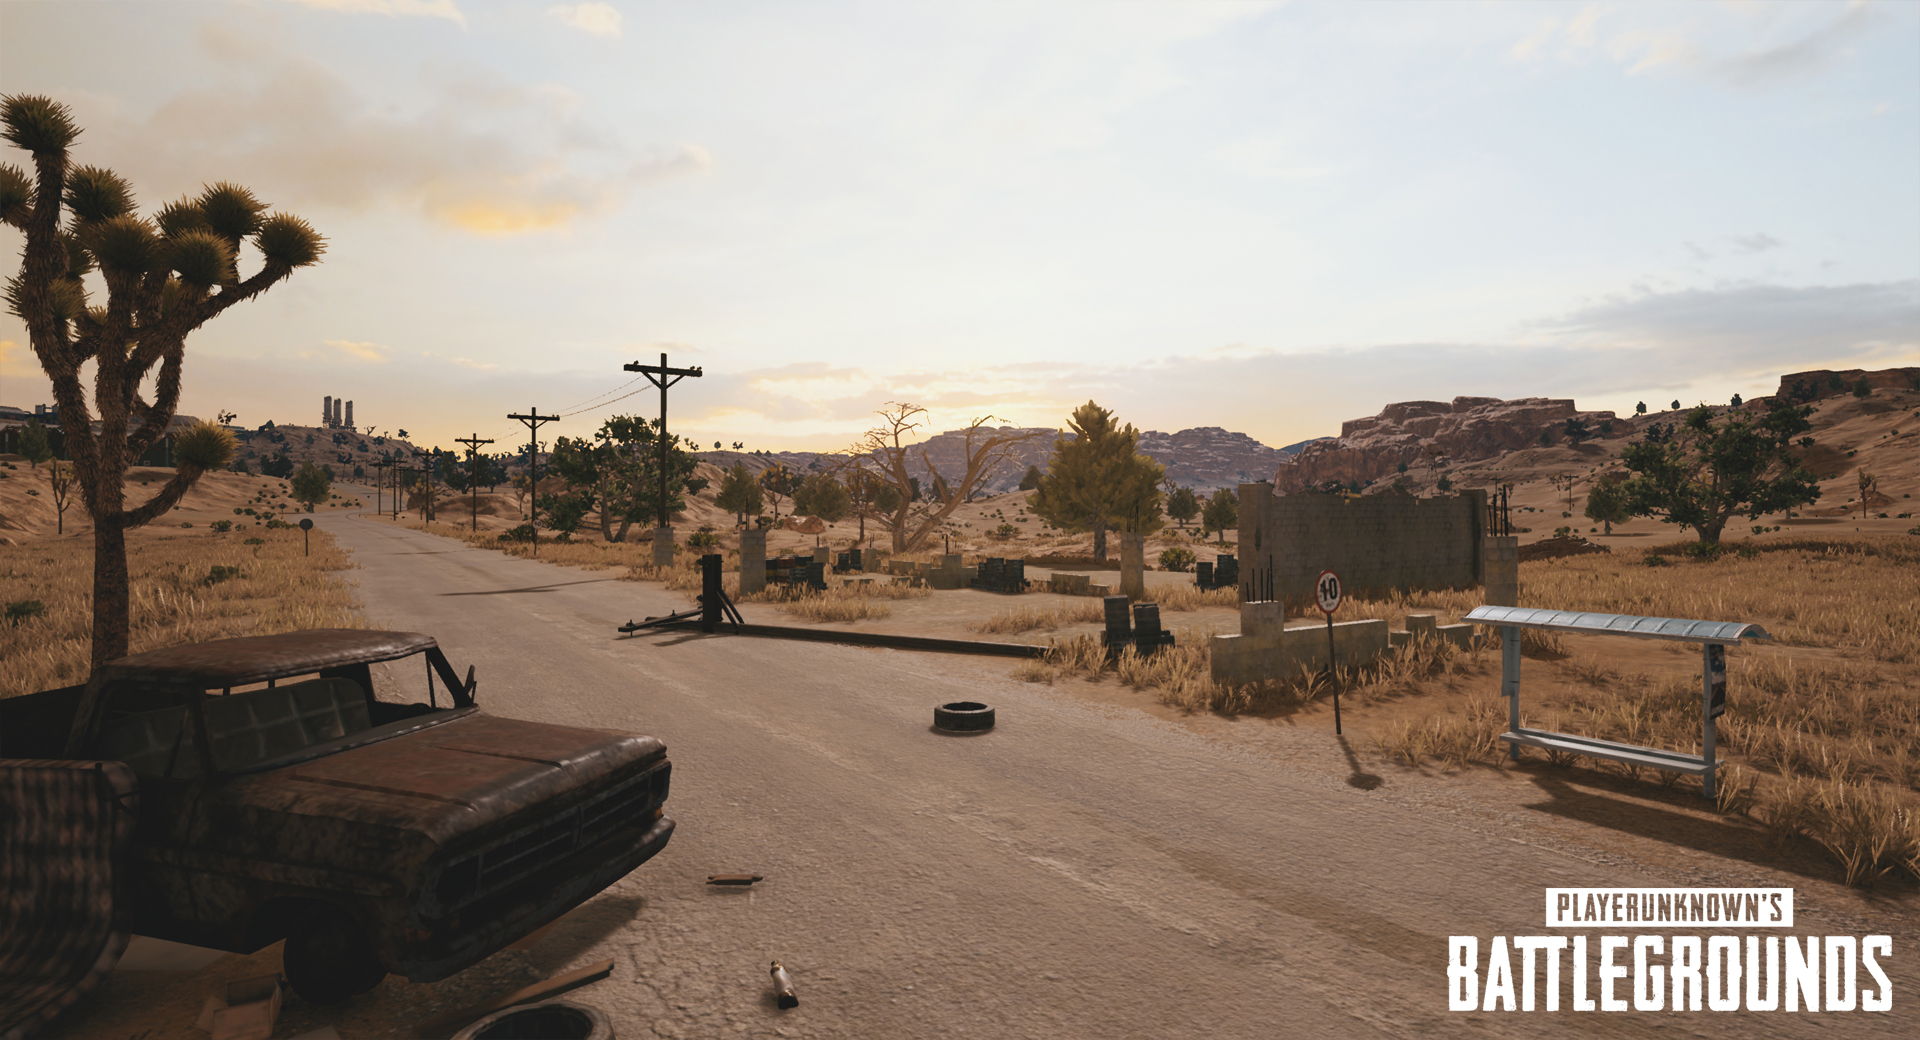 playerunknowns battlegrounds nvidia desert map screenshot 004 - First Five Screenshots Of PUBG's Desert Map